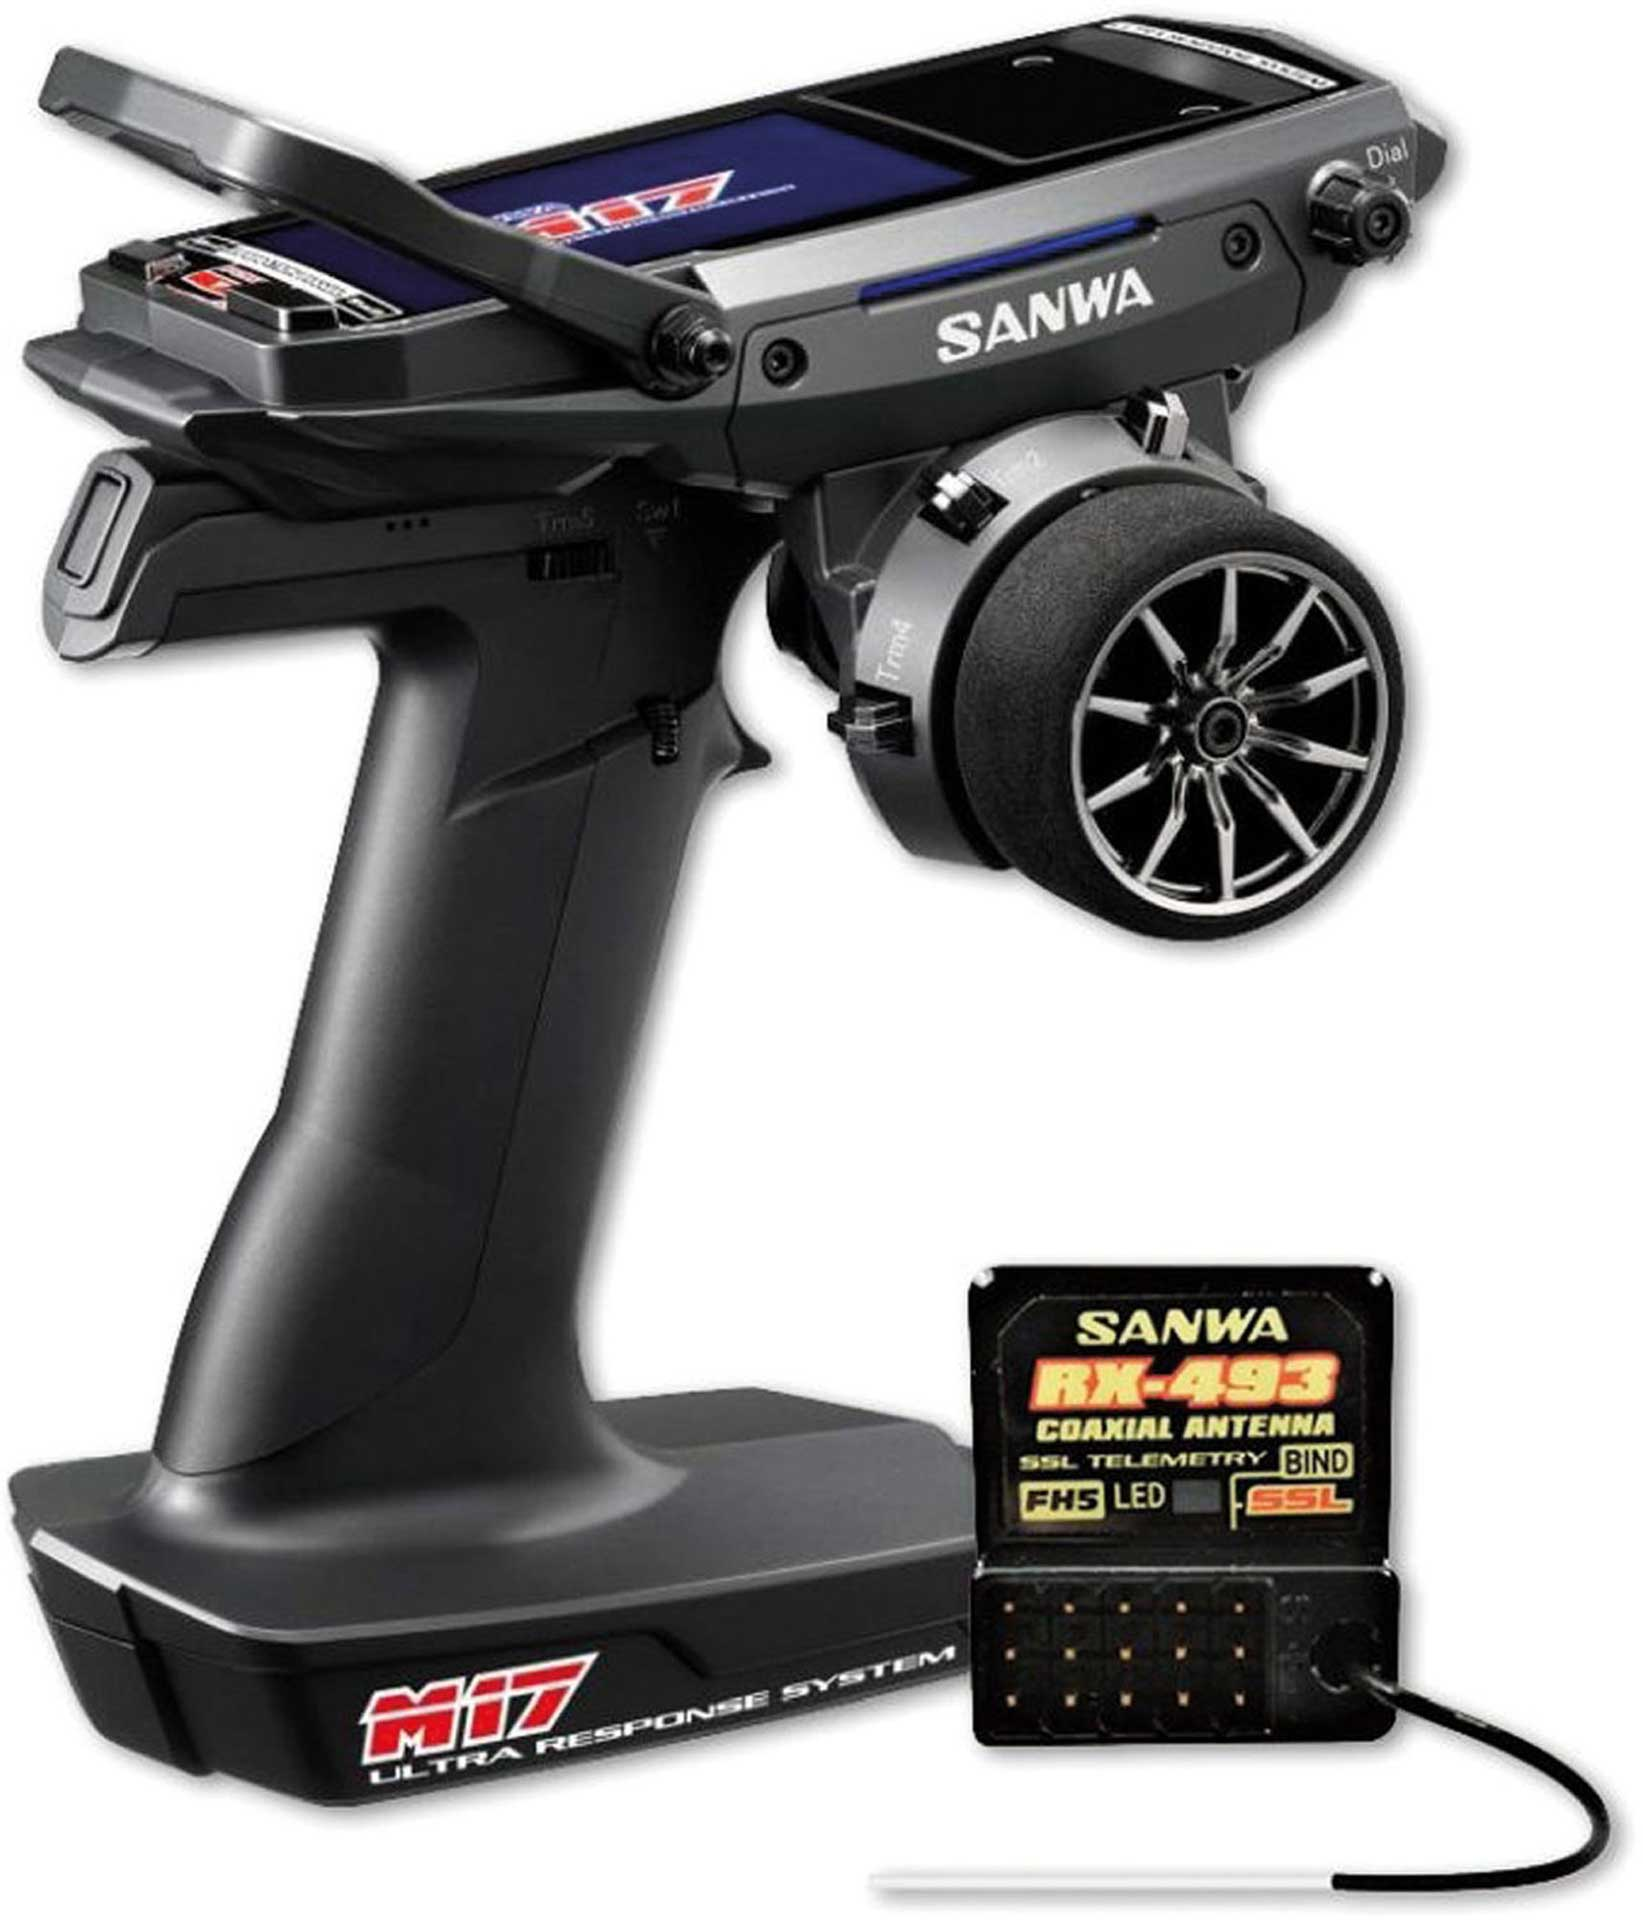 SANWA M17 with RX-439 Receiver CH4 2,4GHZ FH5